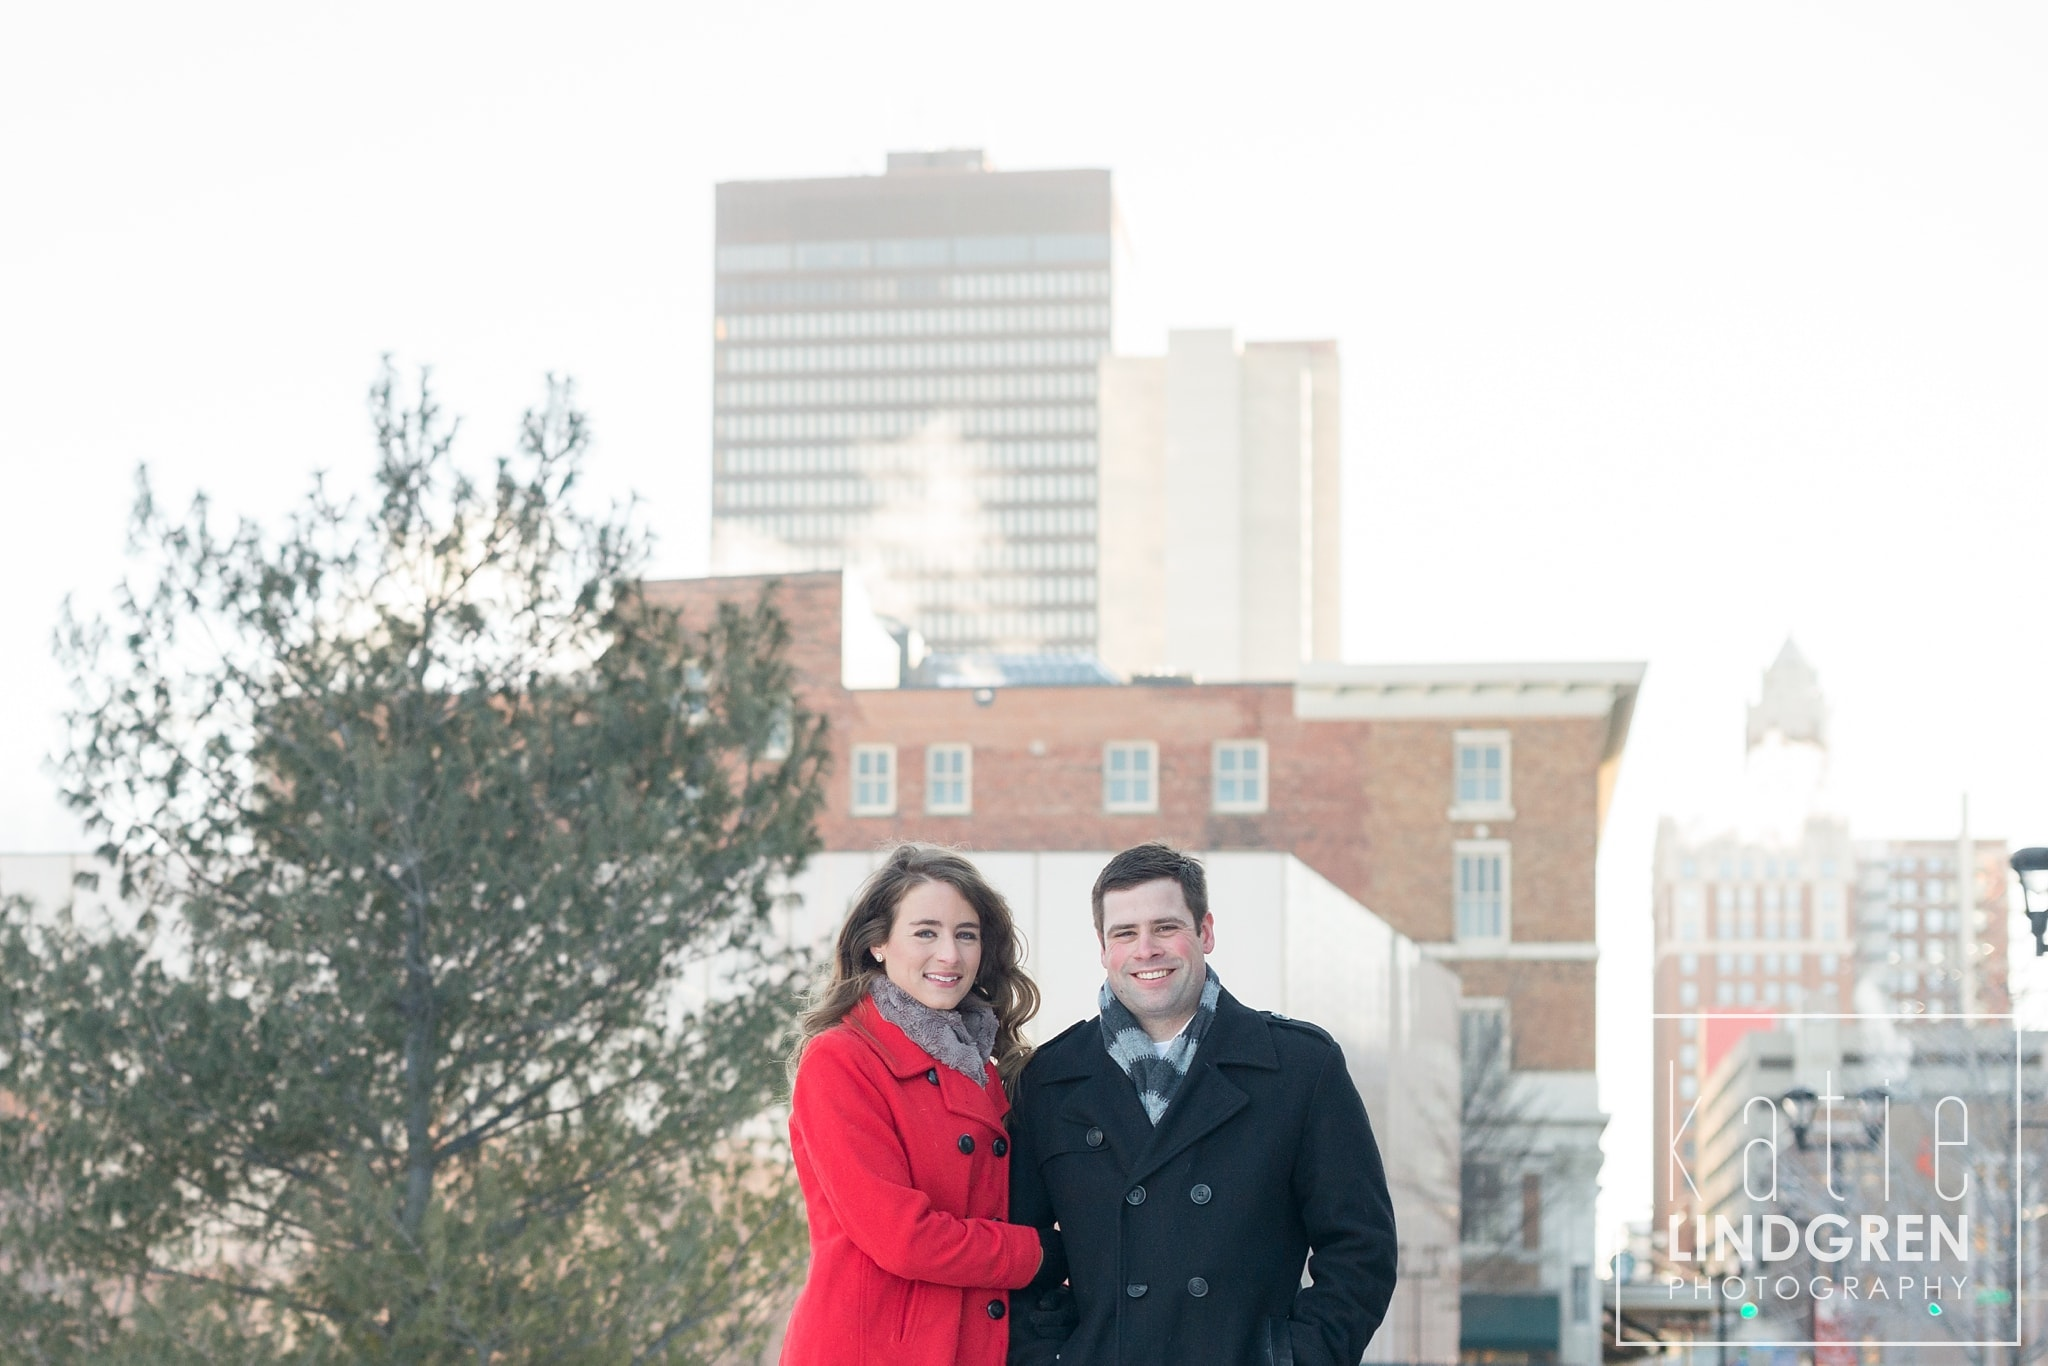 Des Moines Central Library Engagement Photos